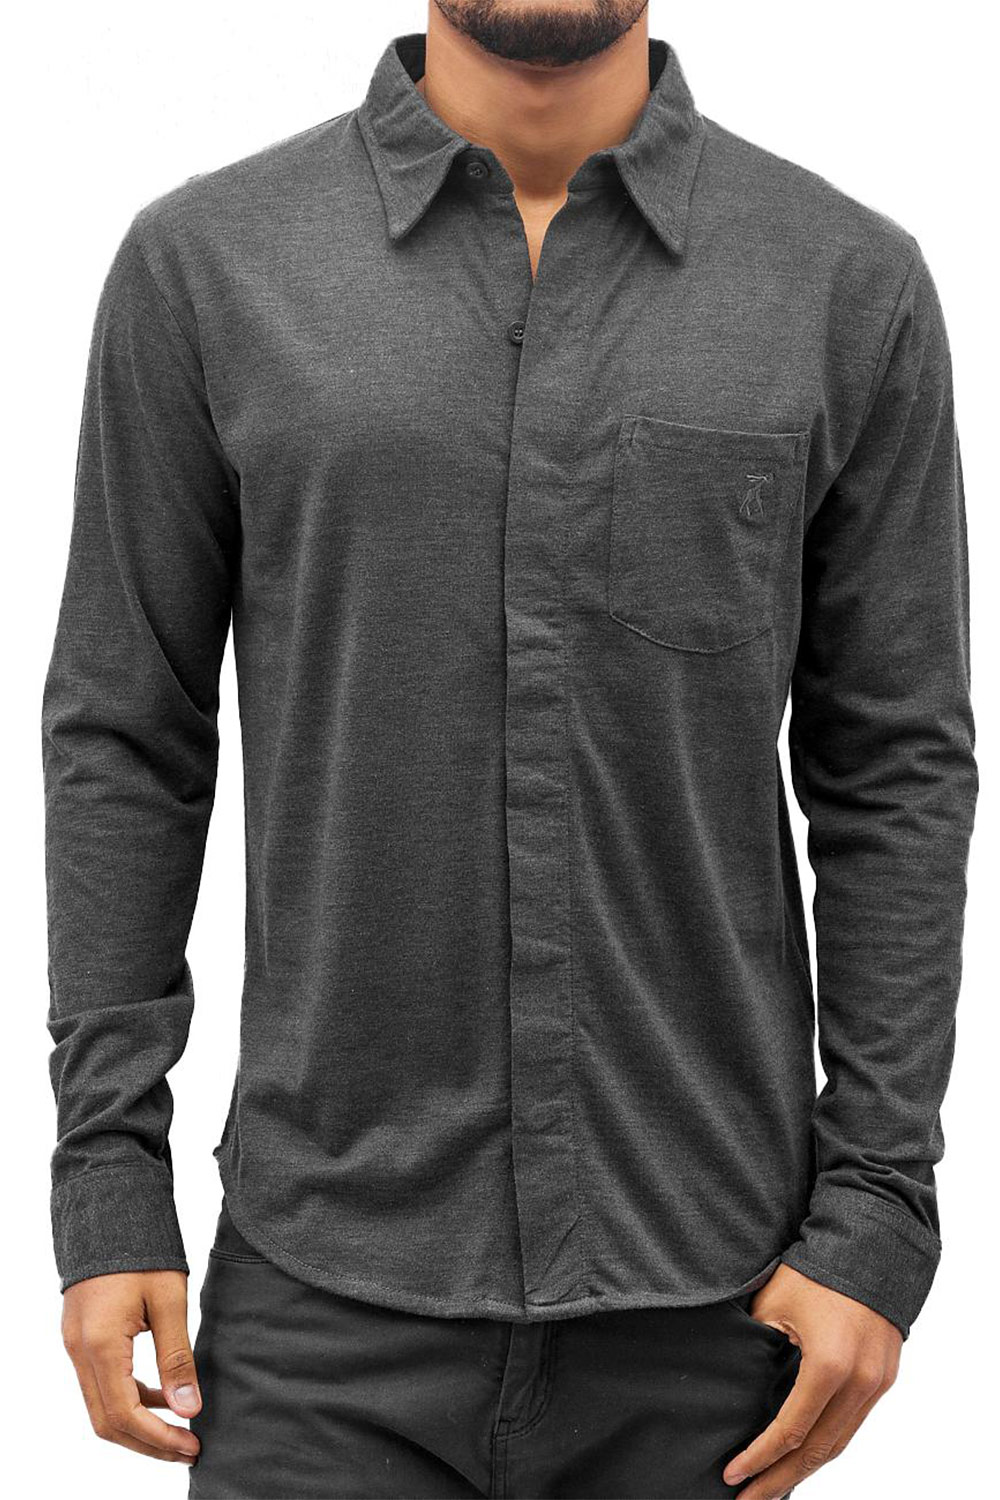 CAZZY CLANG Shirt Anthracite auf oboy.de